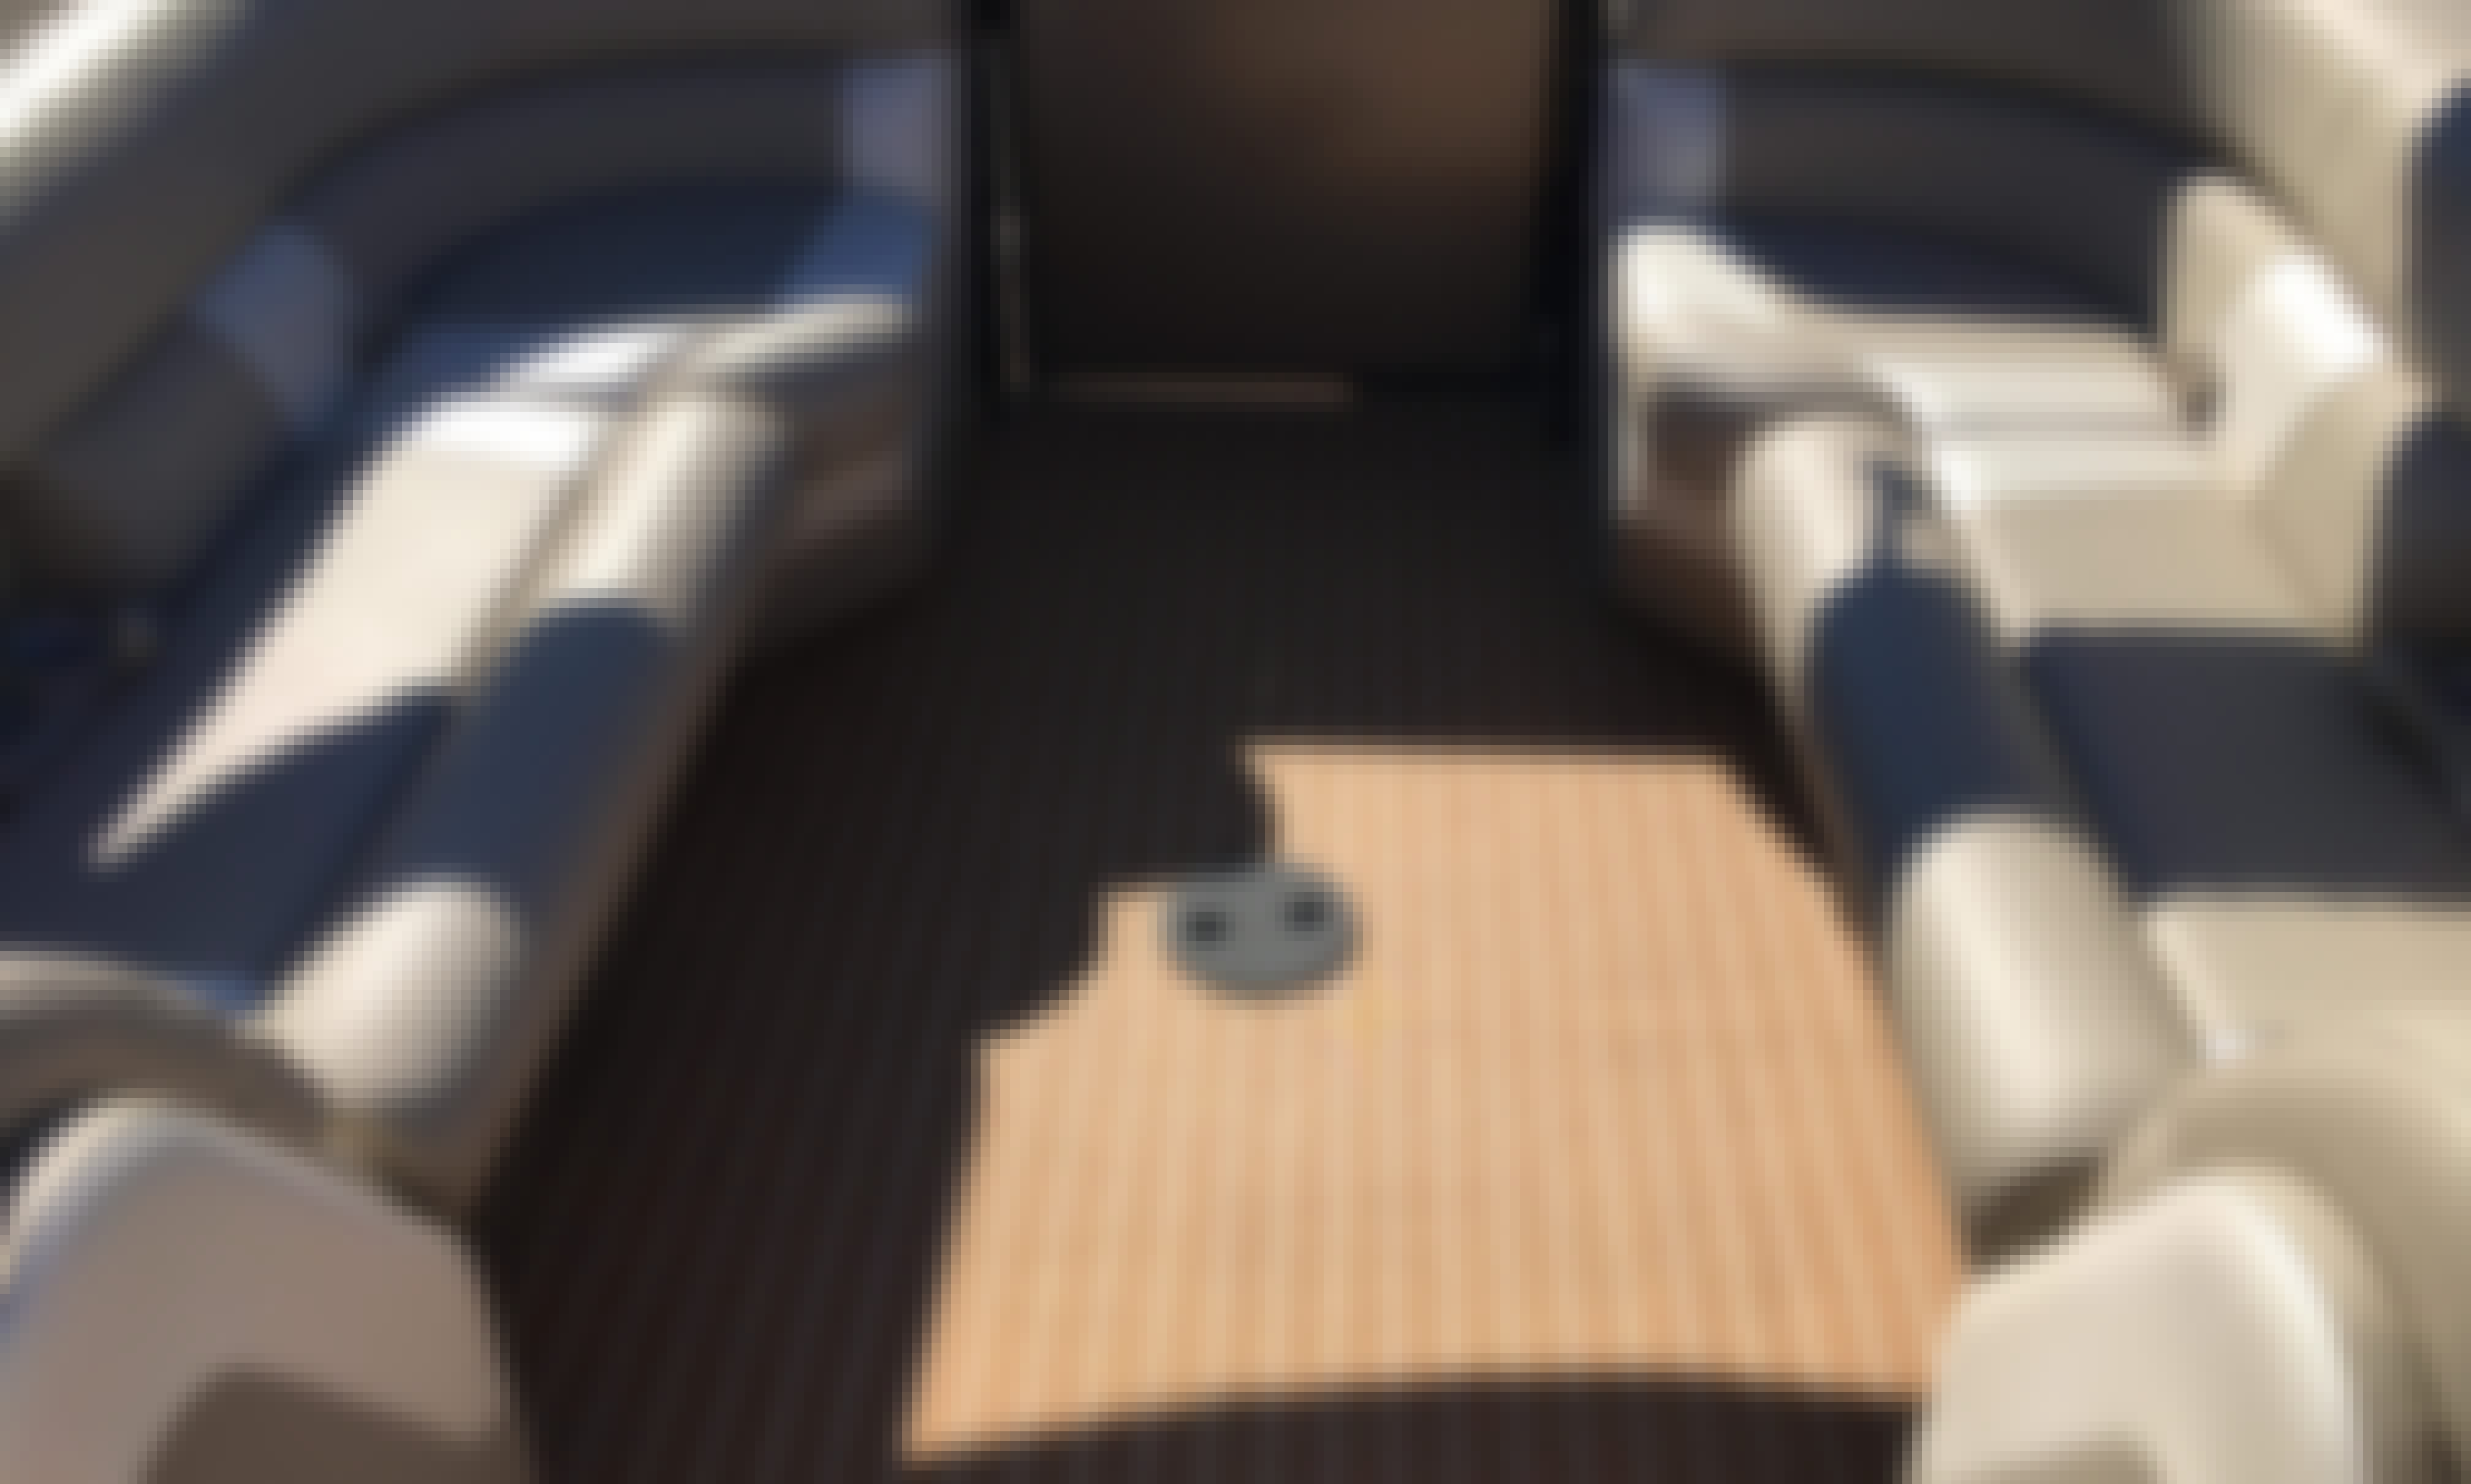 2018 Bentley Admiral Elite 23' Tri-Toon for Rent in Sharps Chapel/Norris Lake!